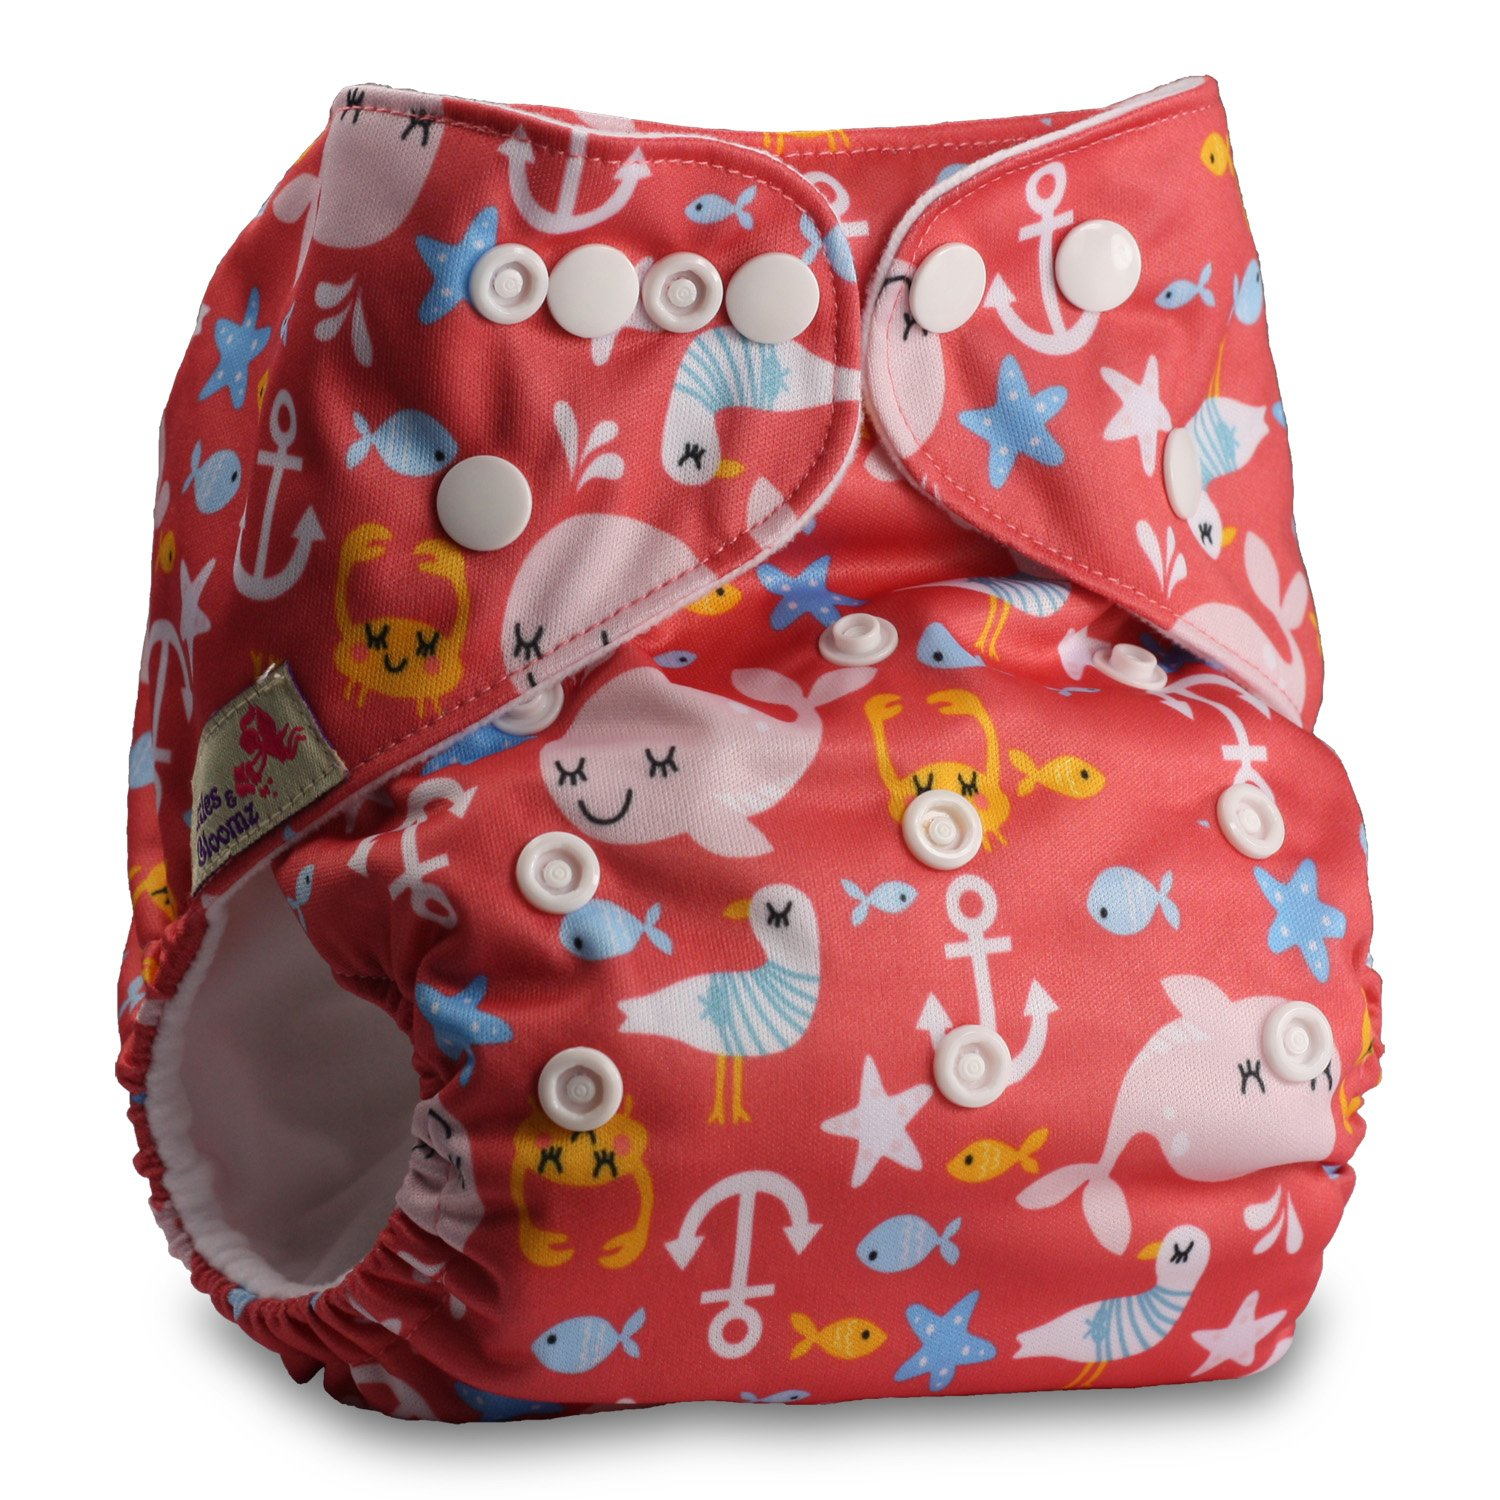 Littles /& Bloomz Pattern 71 with 1 Bamboo Insert Fastener: Popper Reusable Pocket Cloth Nappy Set of 1